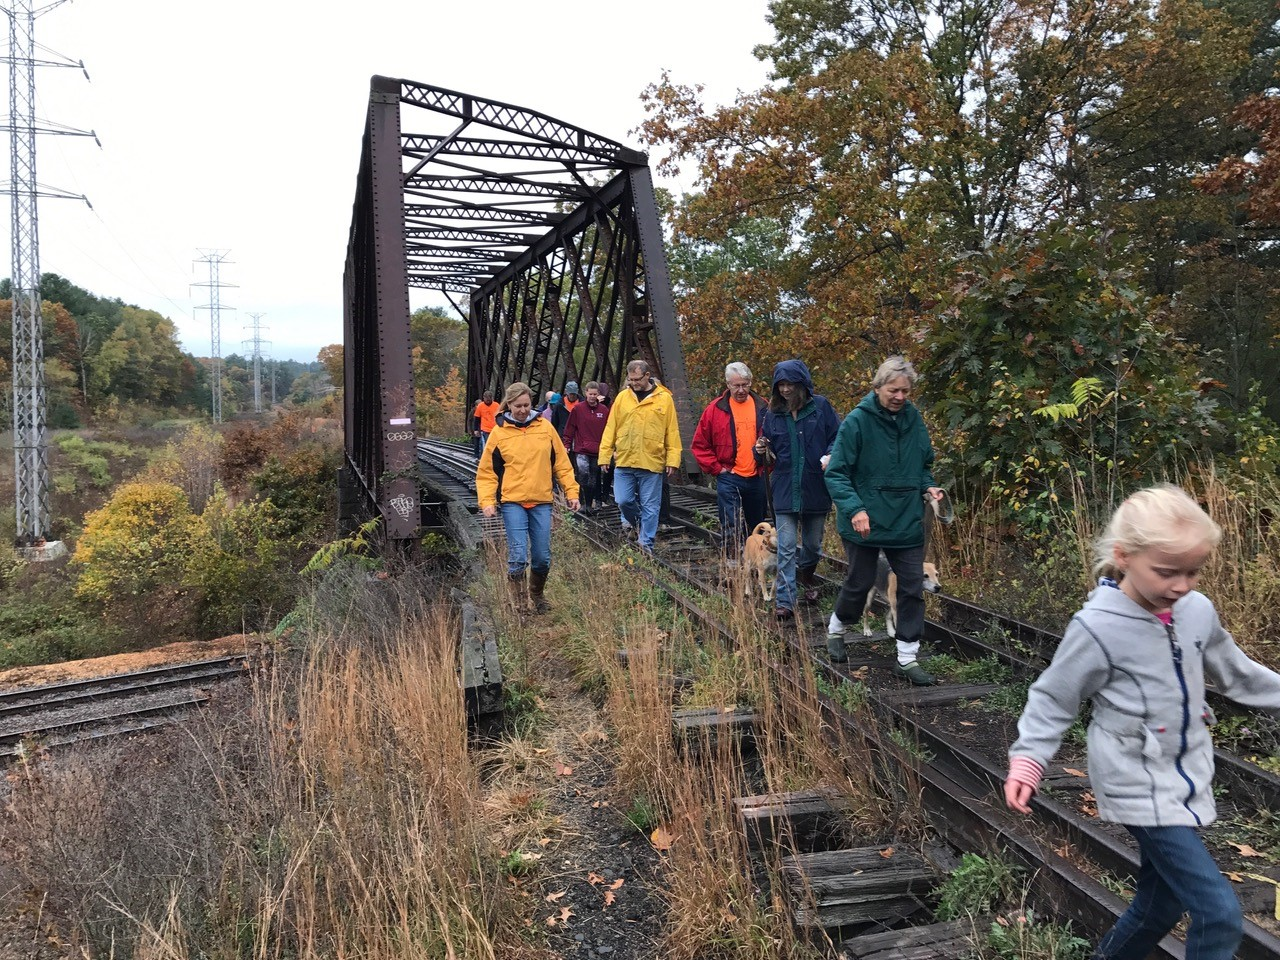 Walkers walking over the old trestle bridge over the Fitchburg Line